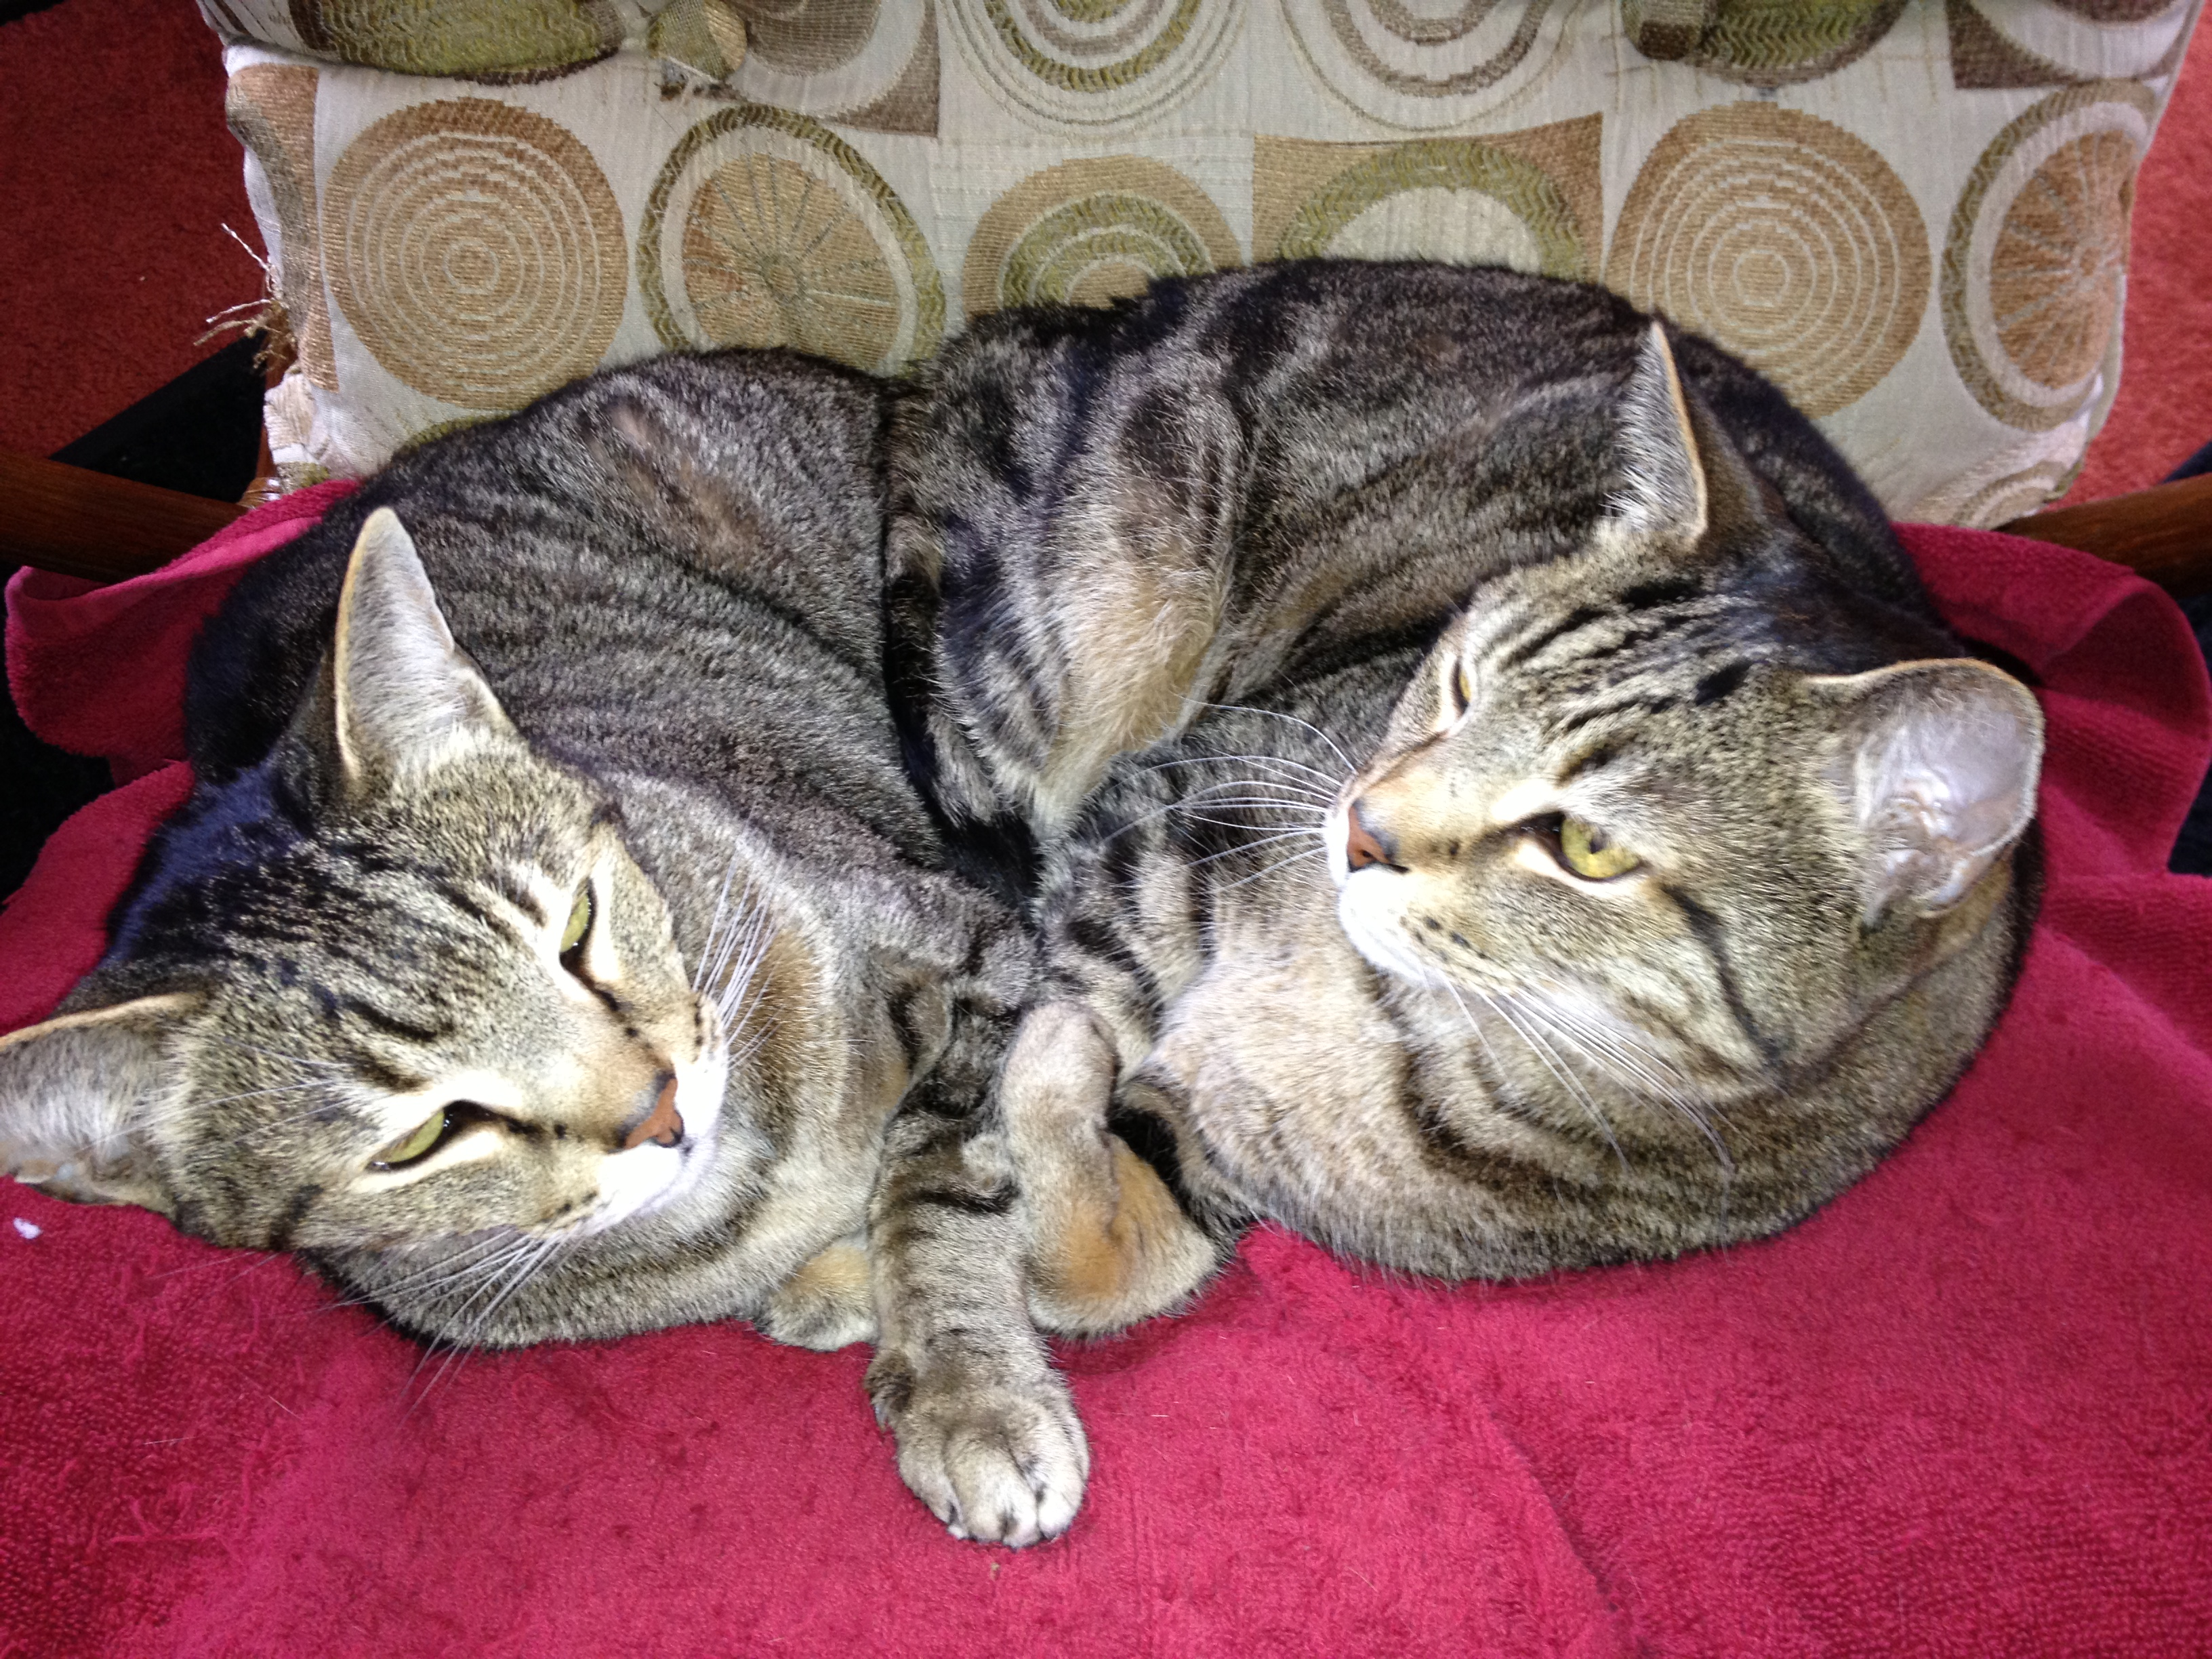 Two cats-Hanz and Franz